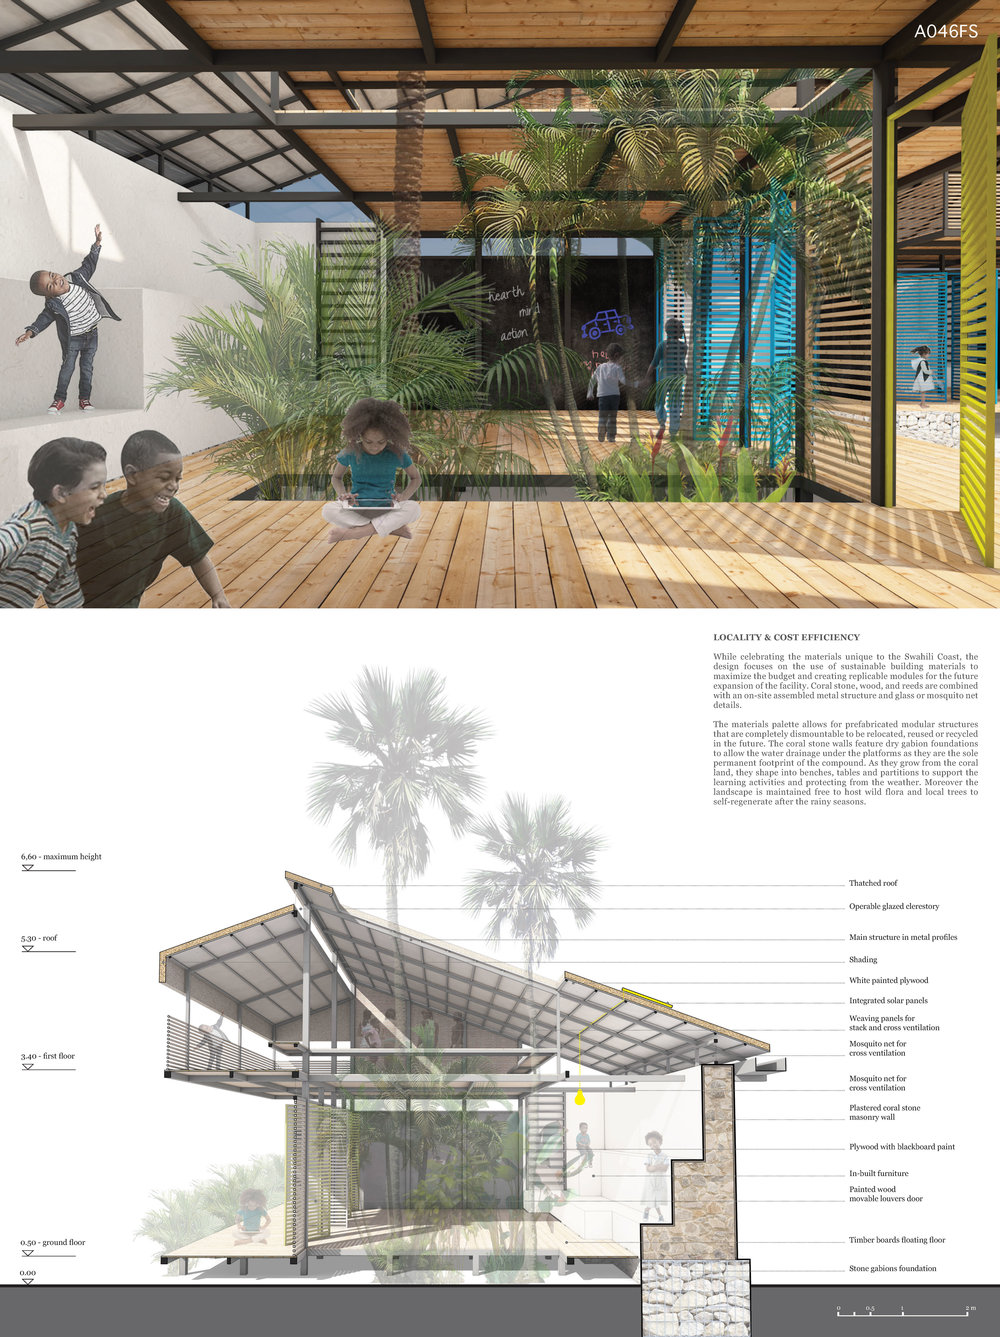 TROPICAL COURTYARDS: STIMULATION BY DESIGN AND ENVIRONMENTAL RESPONSE